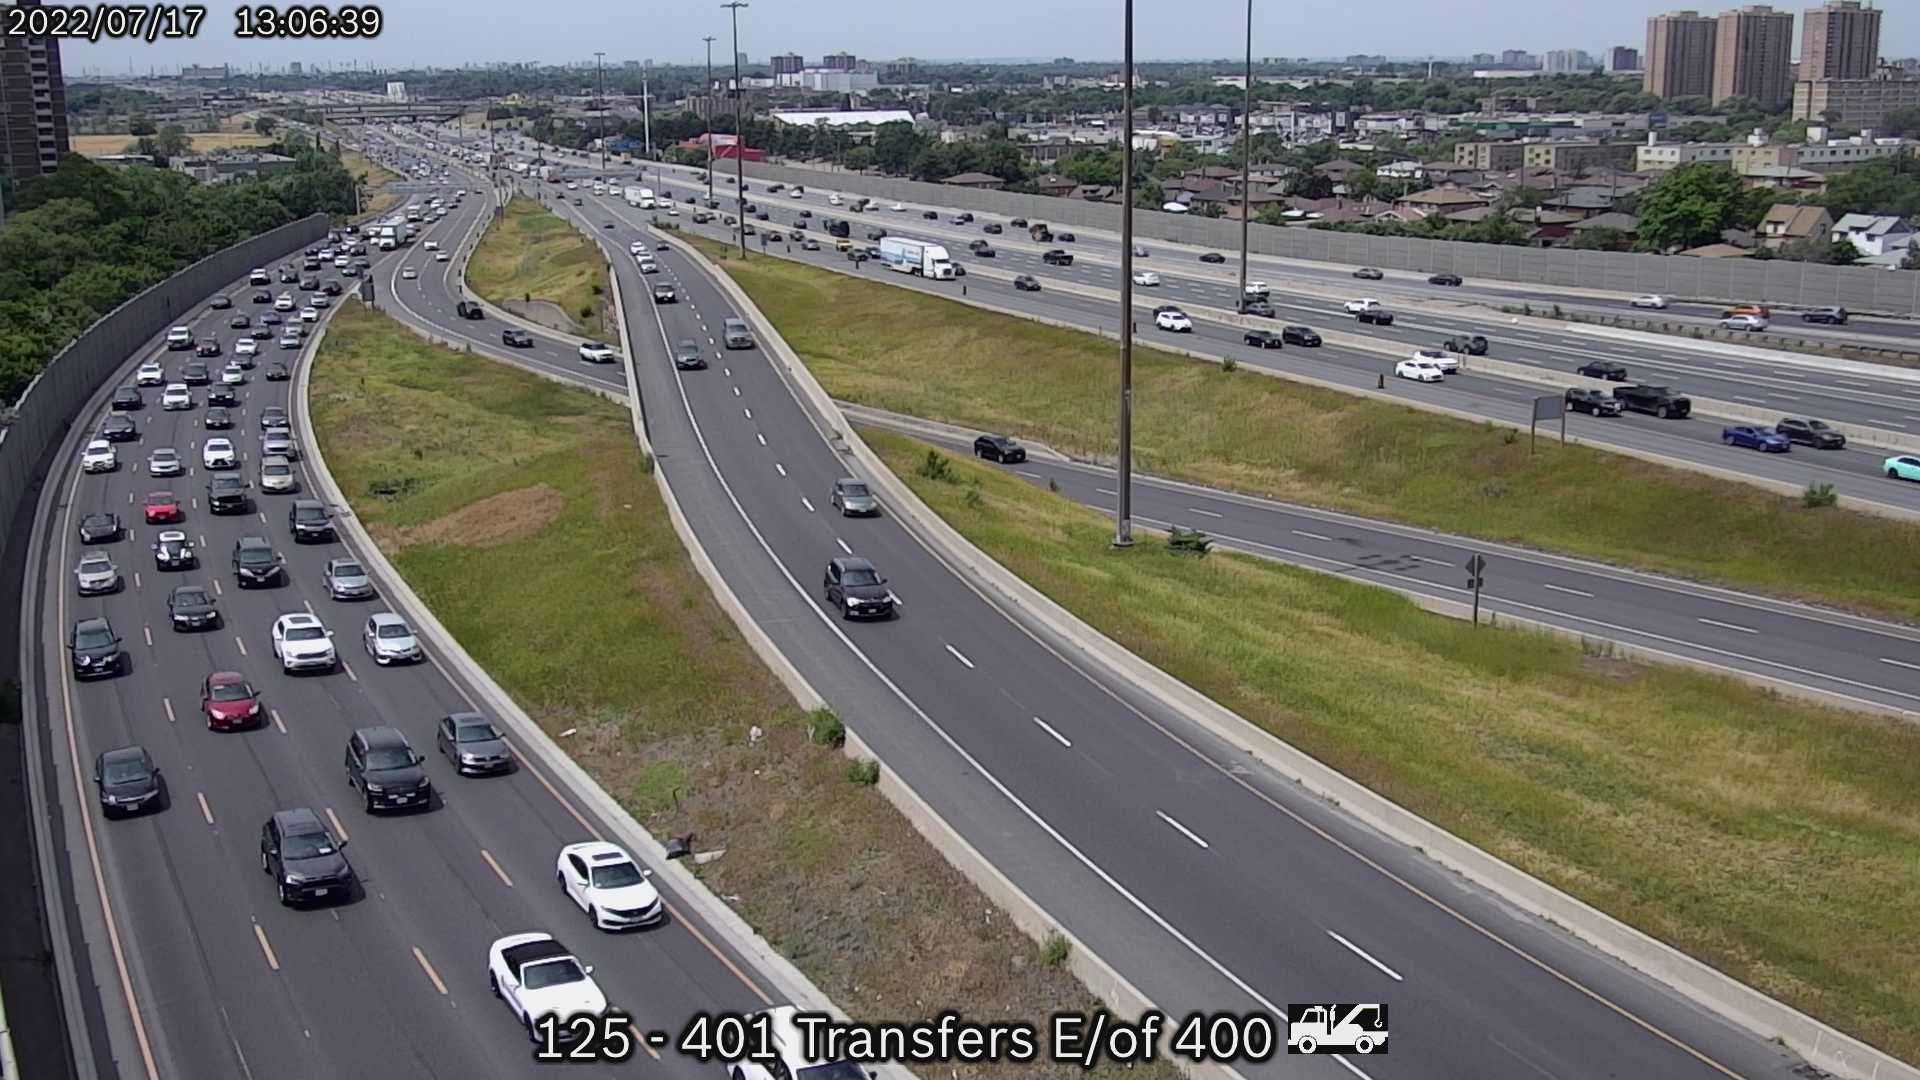 401 at basket weave near Jane St